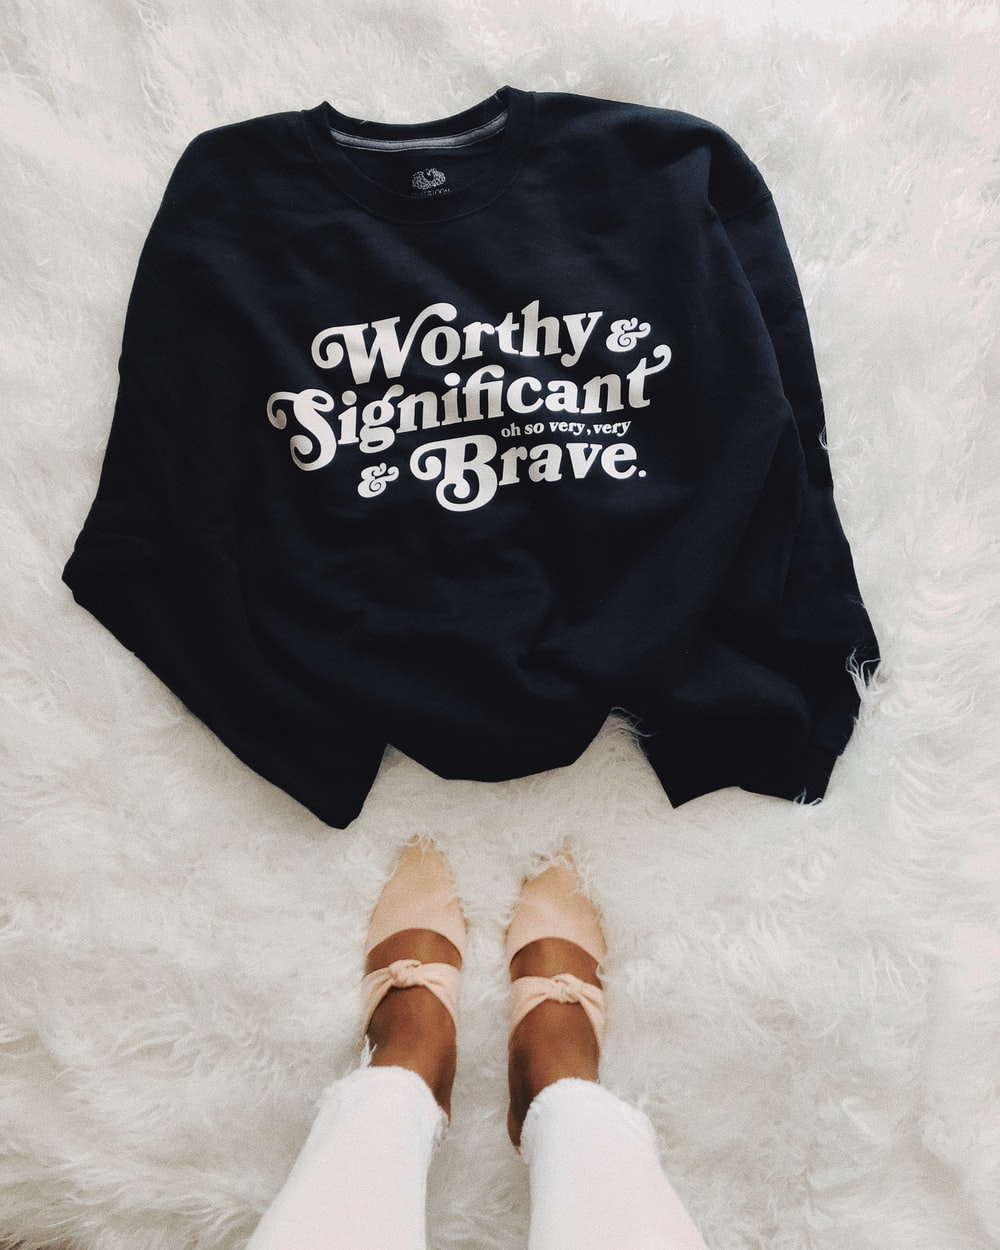 black and white Worthy & Significant & Brave text-printed top